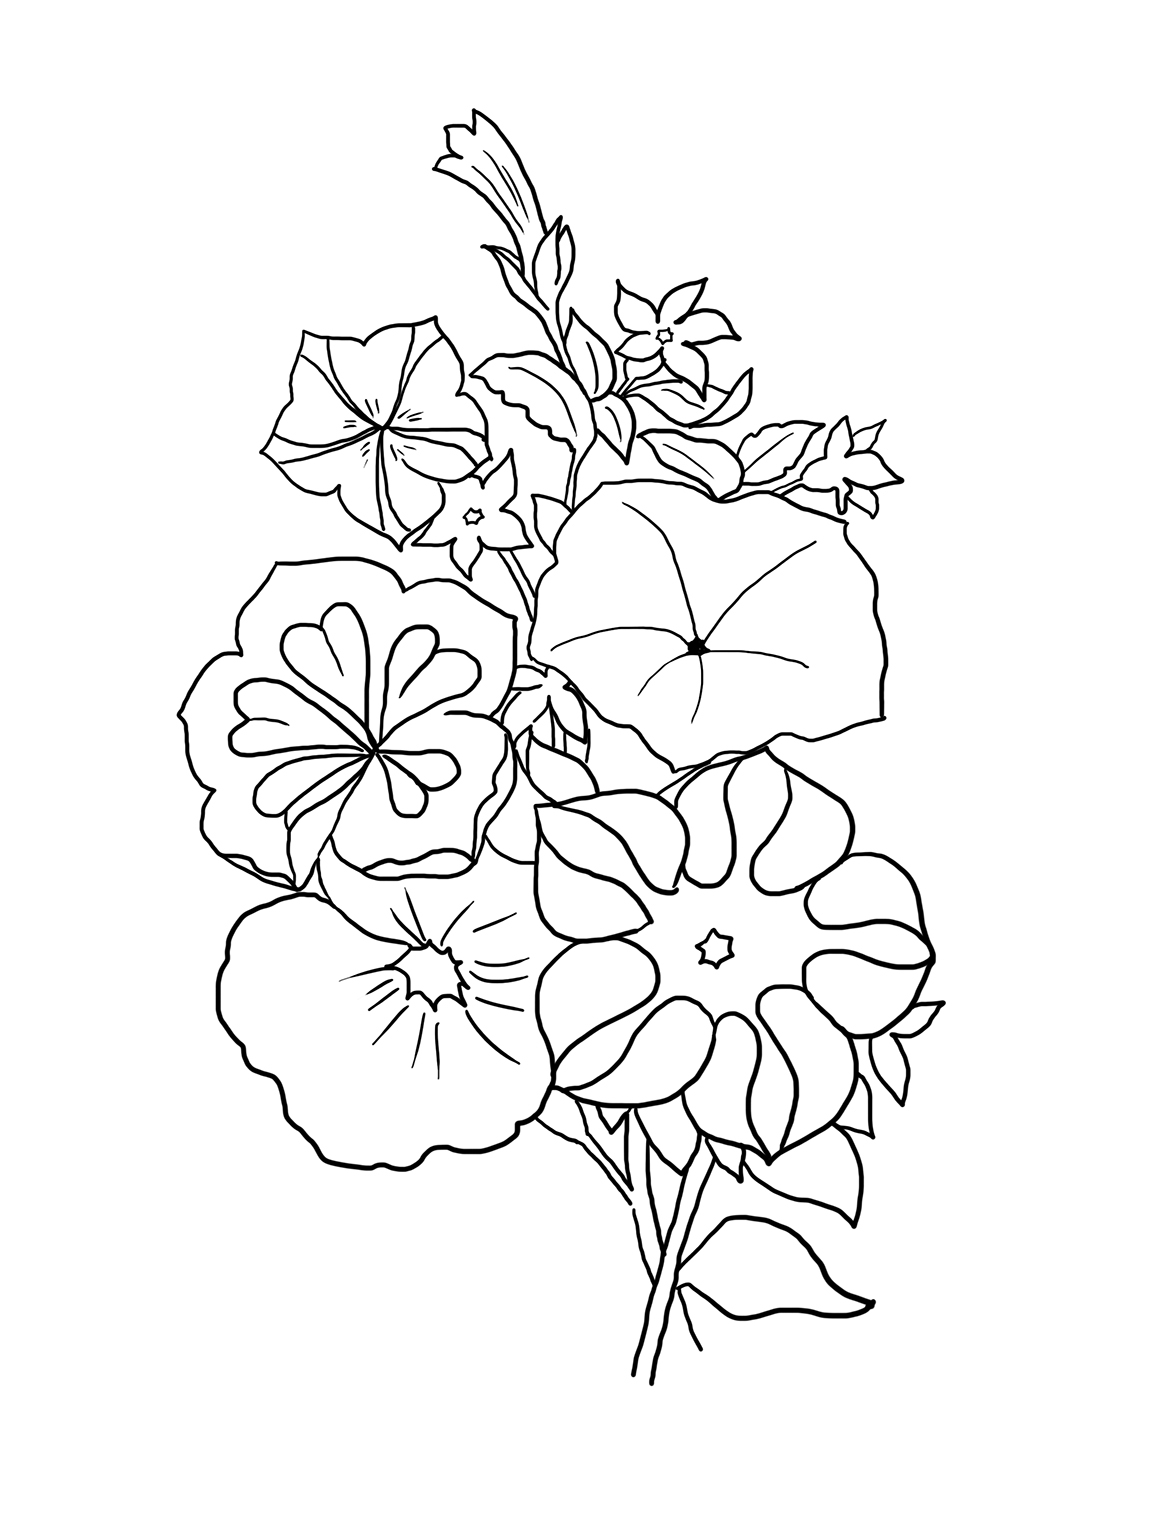 flower coloring page spring flower coloring pages to download and print for free flower page coloring